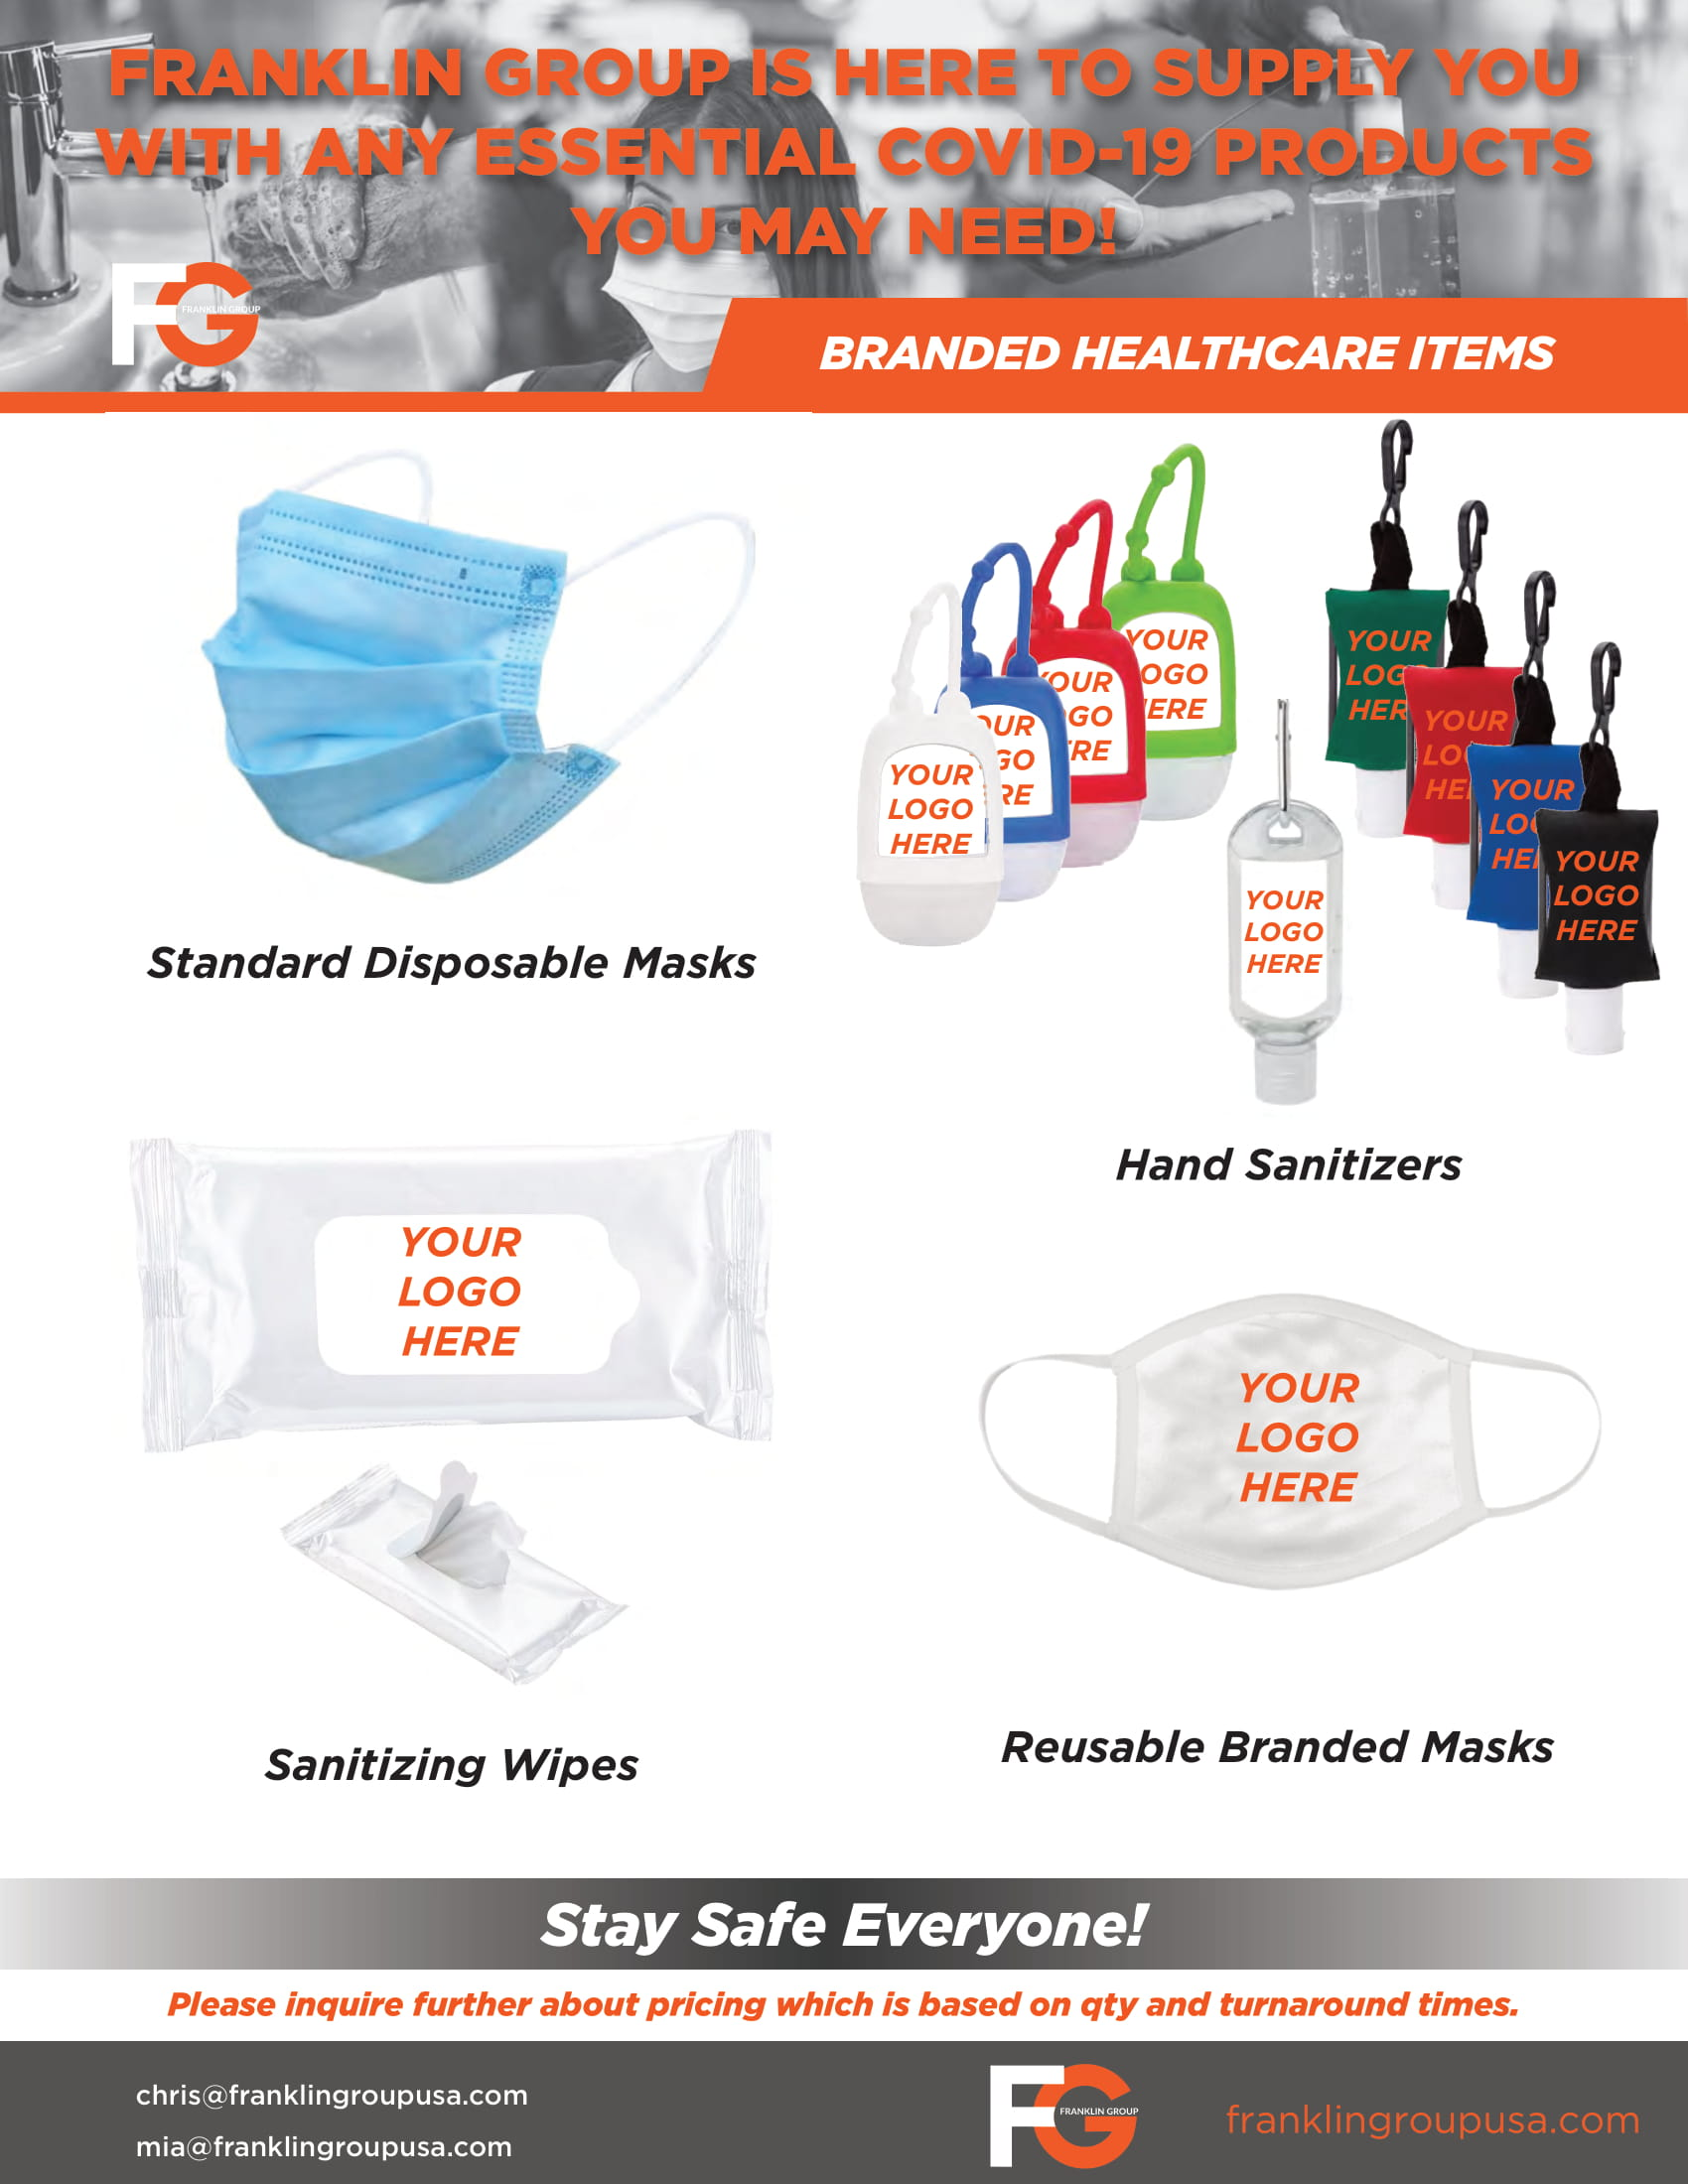 Branded Healthcare Items